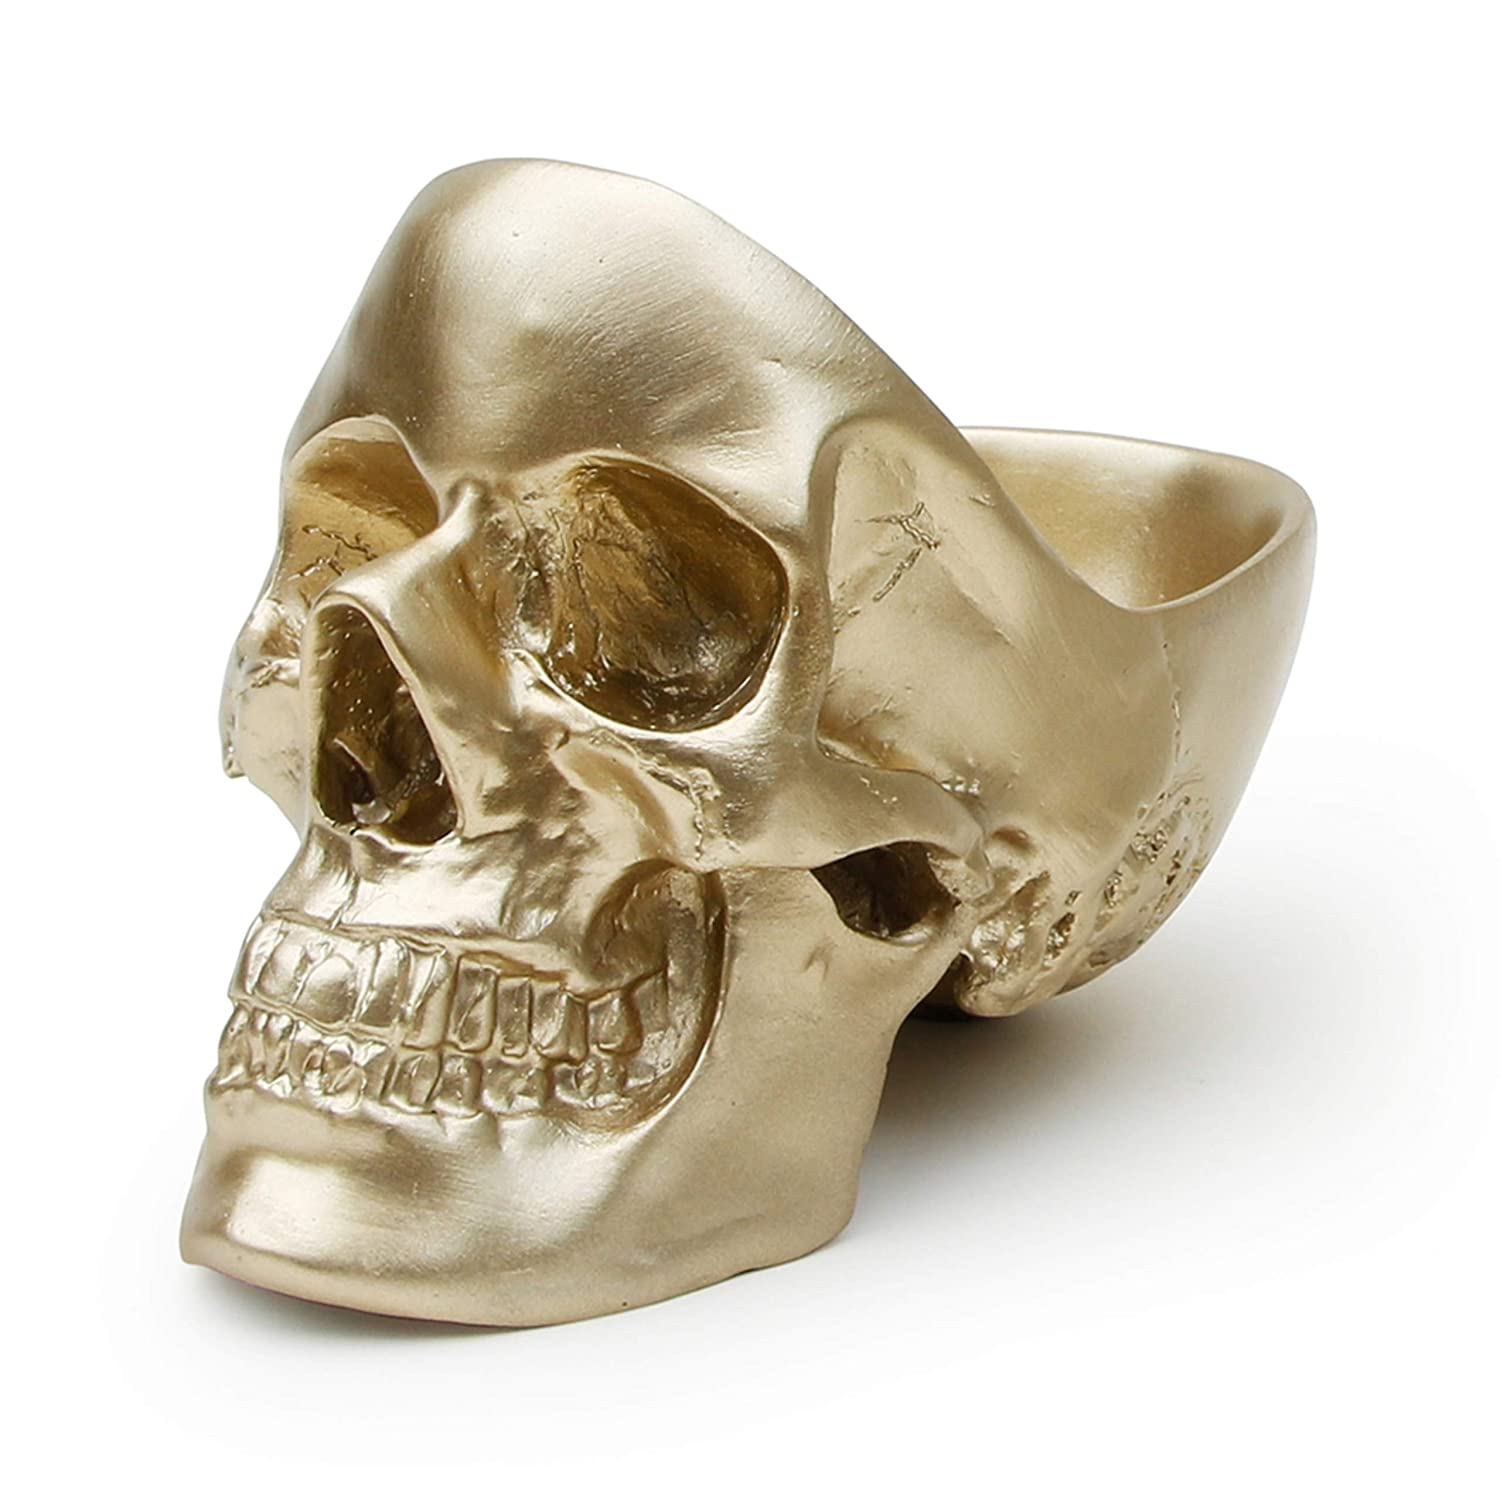 Suck UK Skull Tidy, Jewellry Box Accessories Container in Gold-Perfect for Storing Keys, Jewellery, Stationary, Spare Coins or Cosmetics